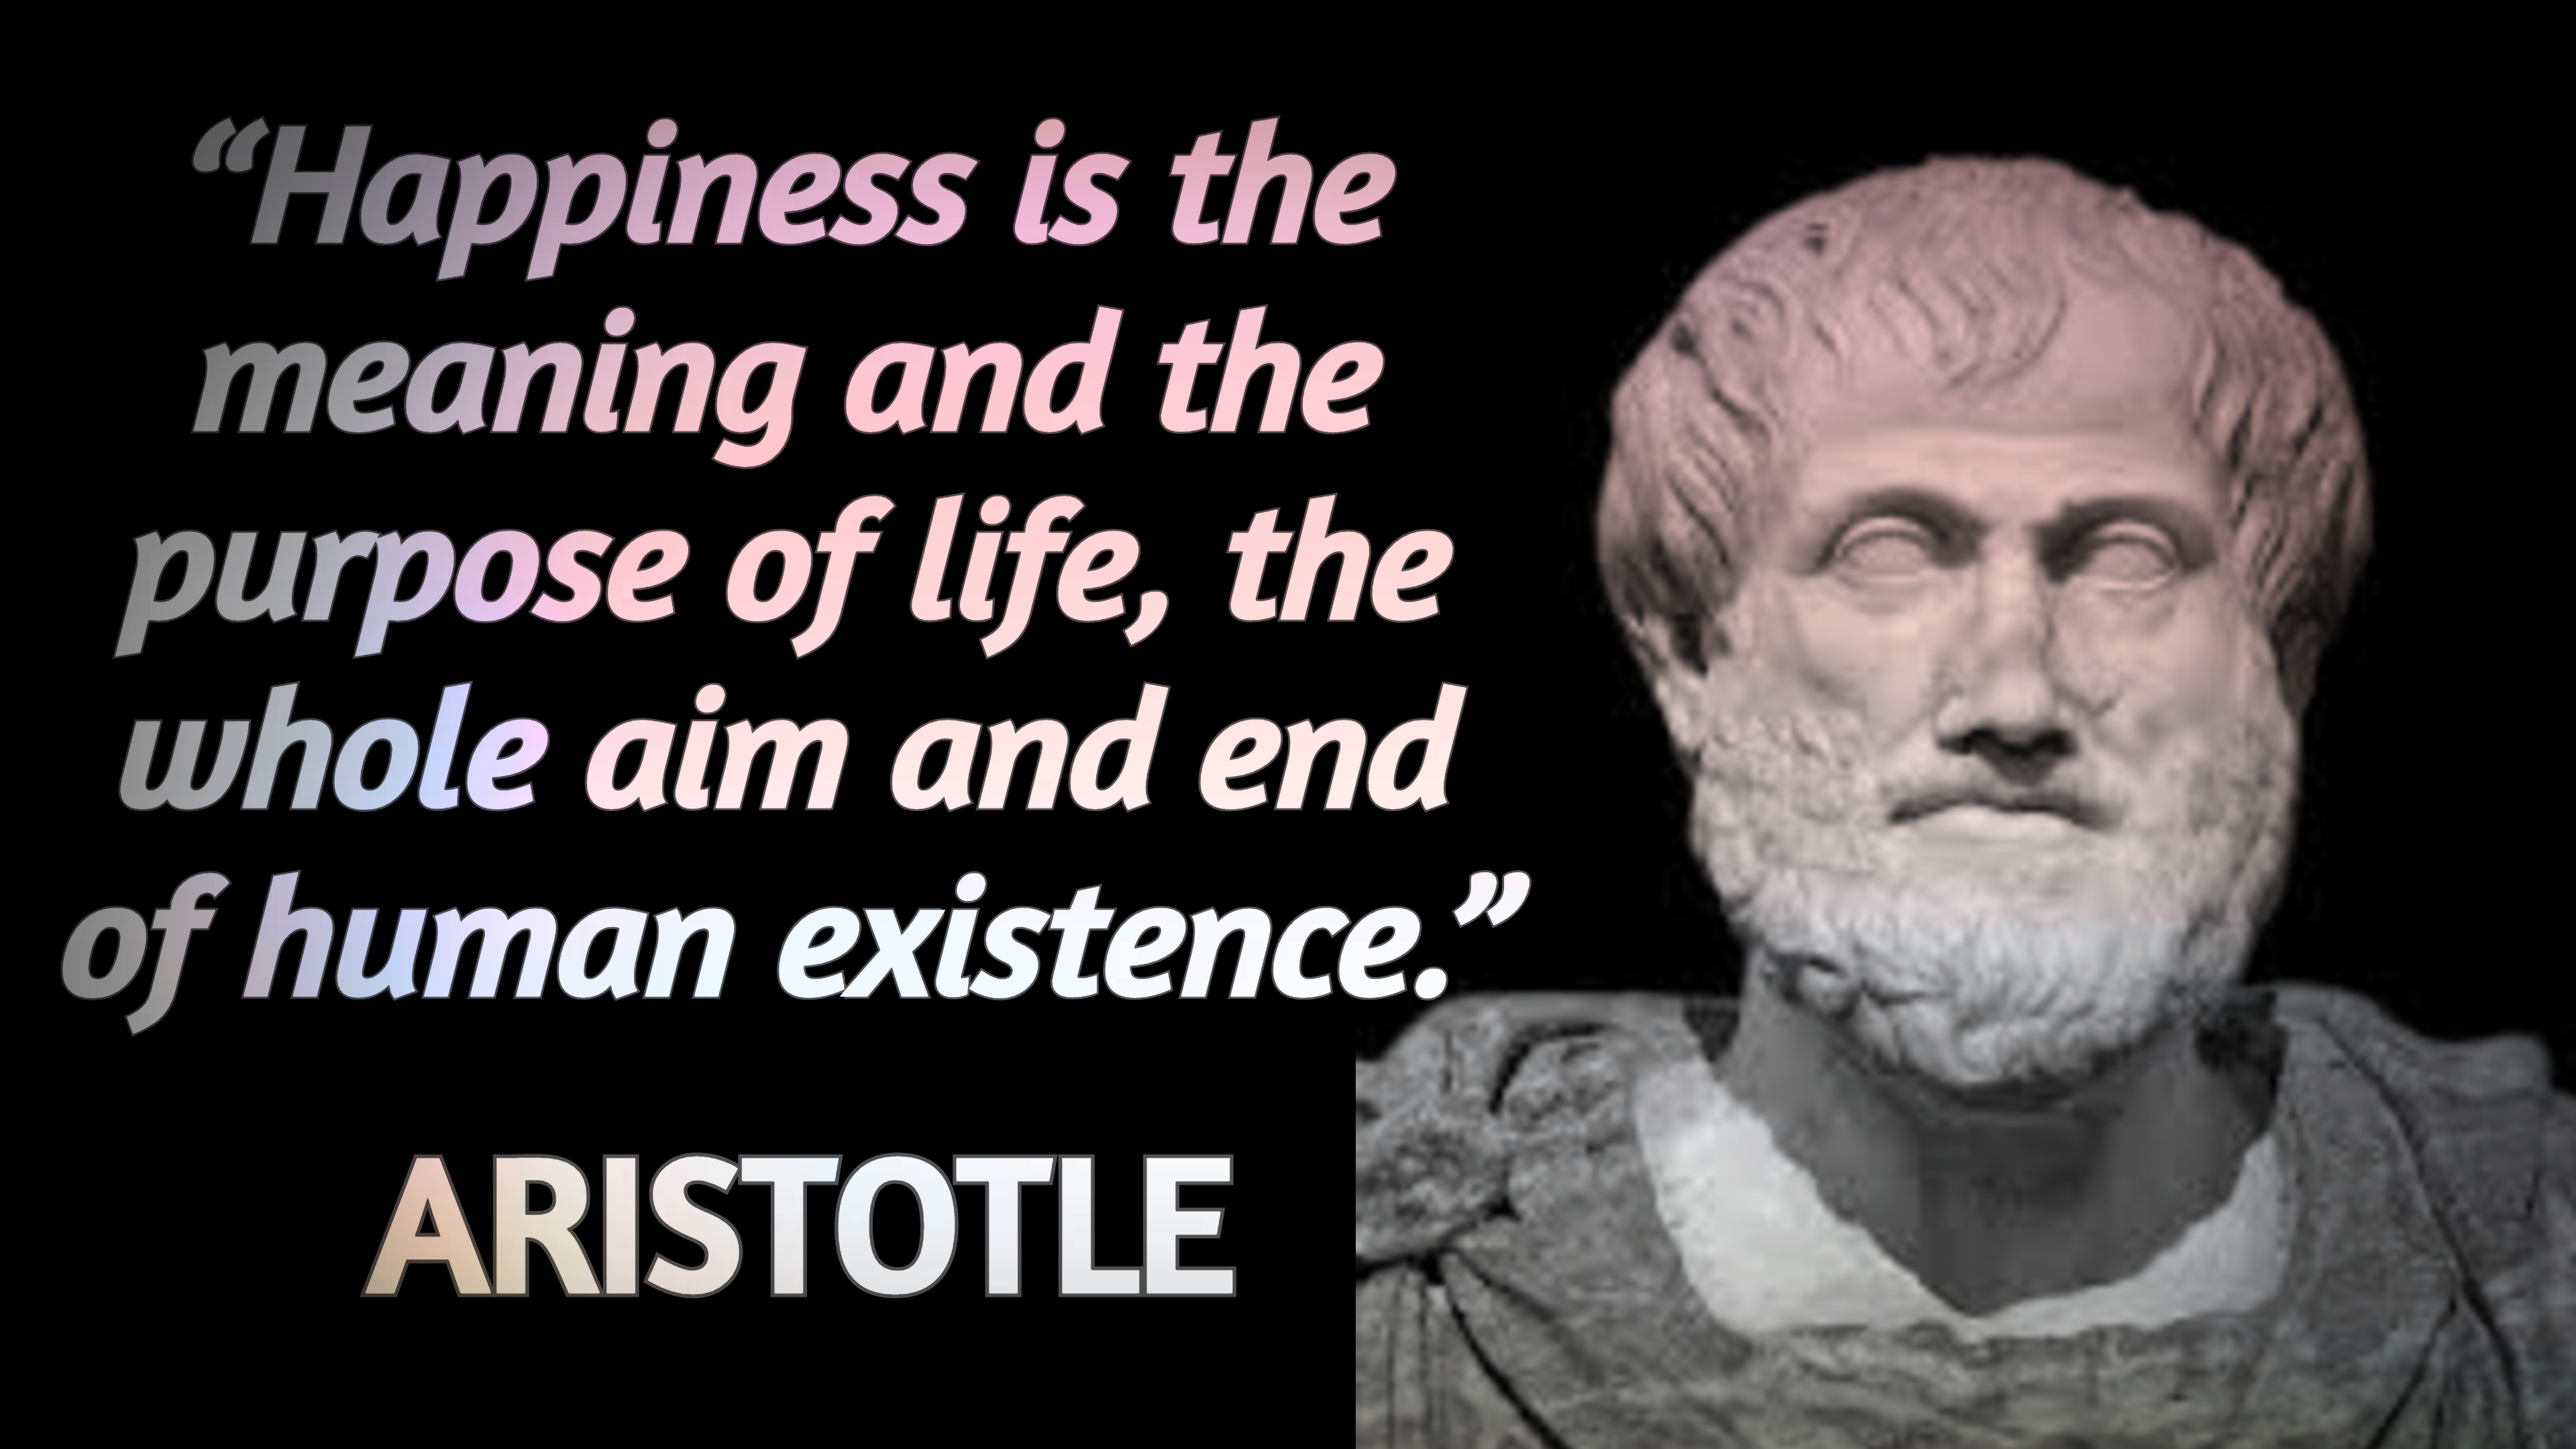 """Happiness is the meaning and the purpose of life, the whole aim and end of human existence."" ― Aristotle [3840×2160]"